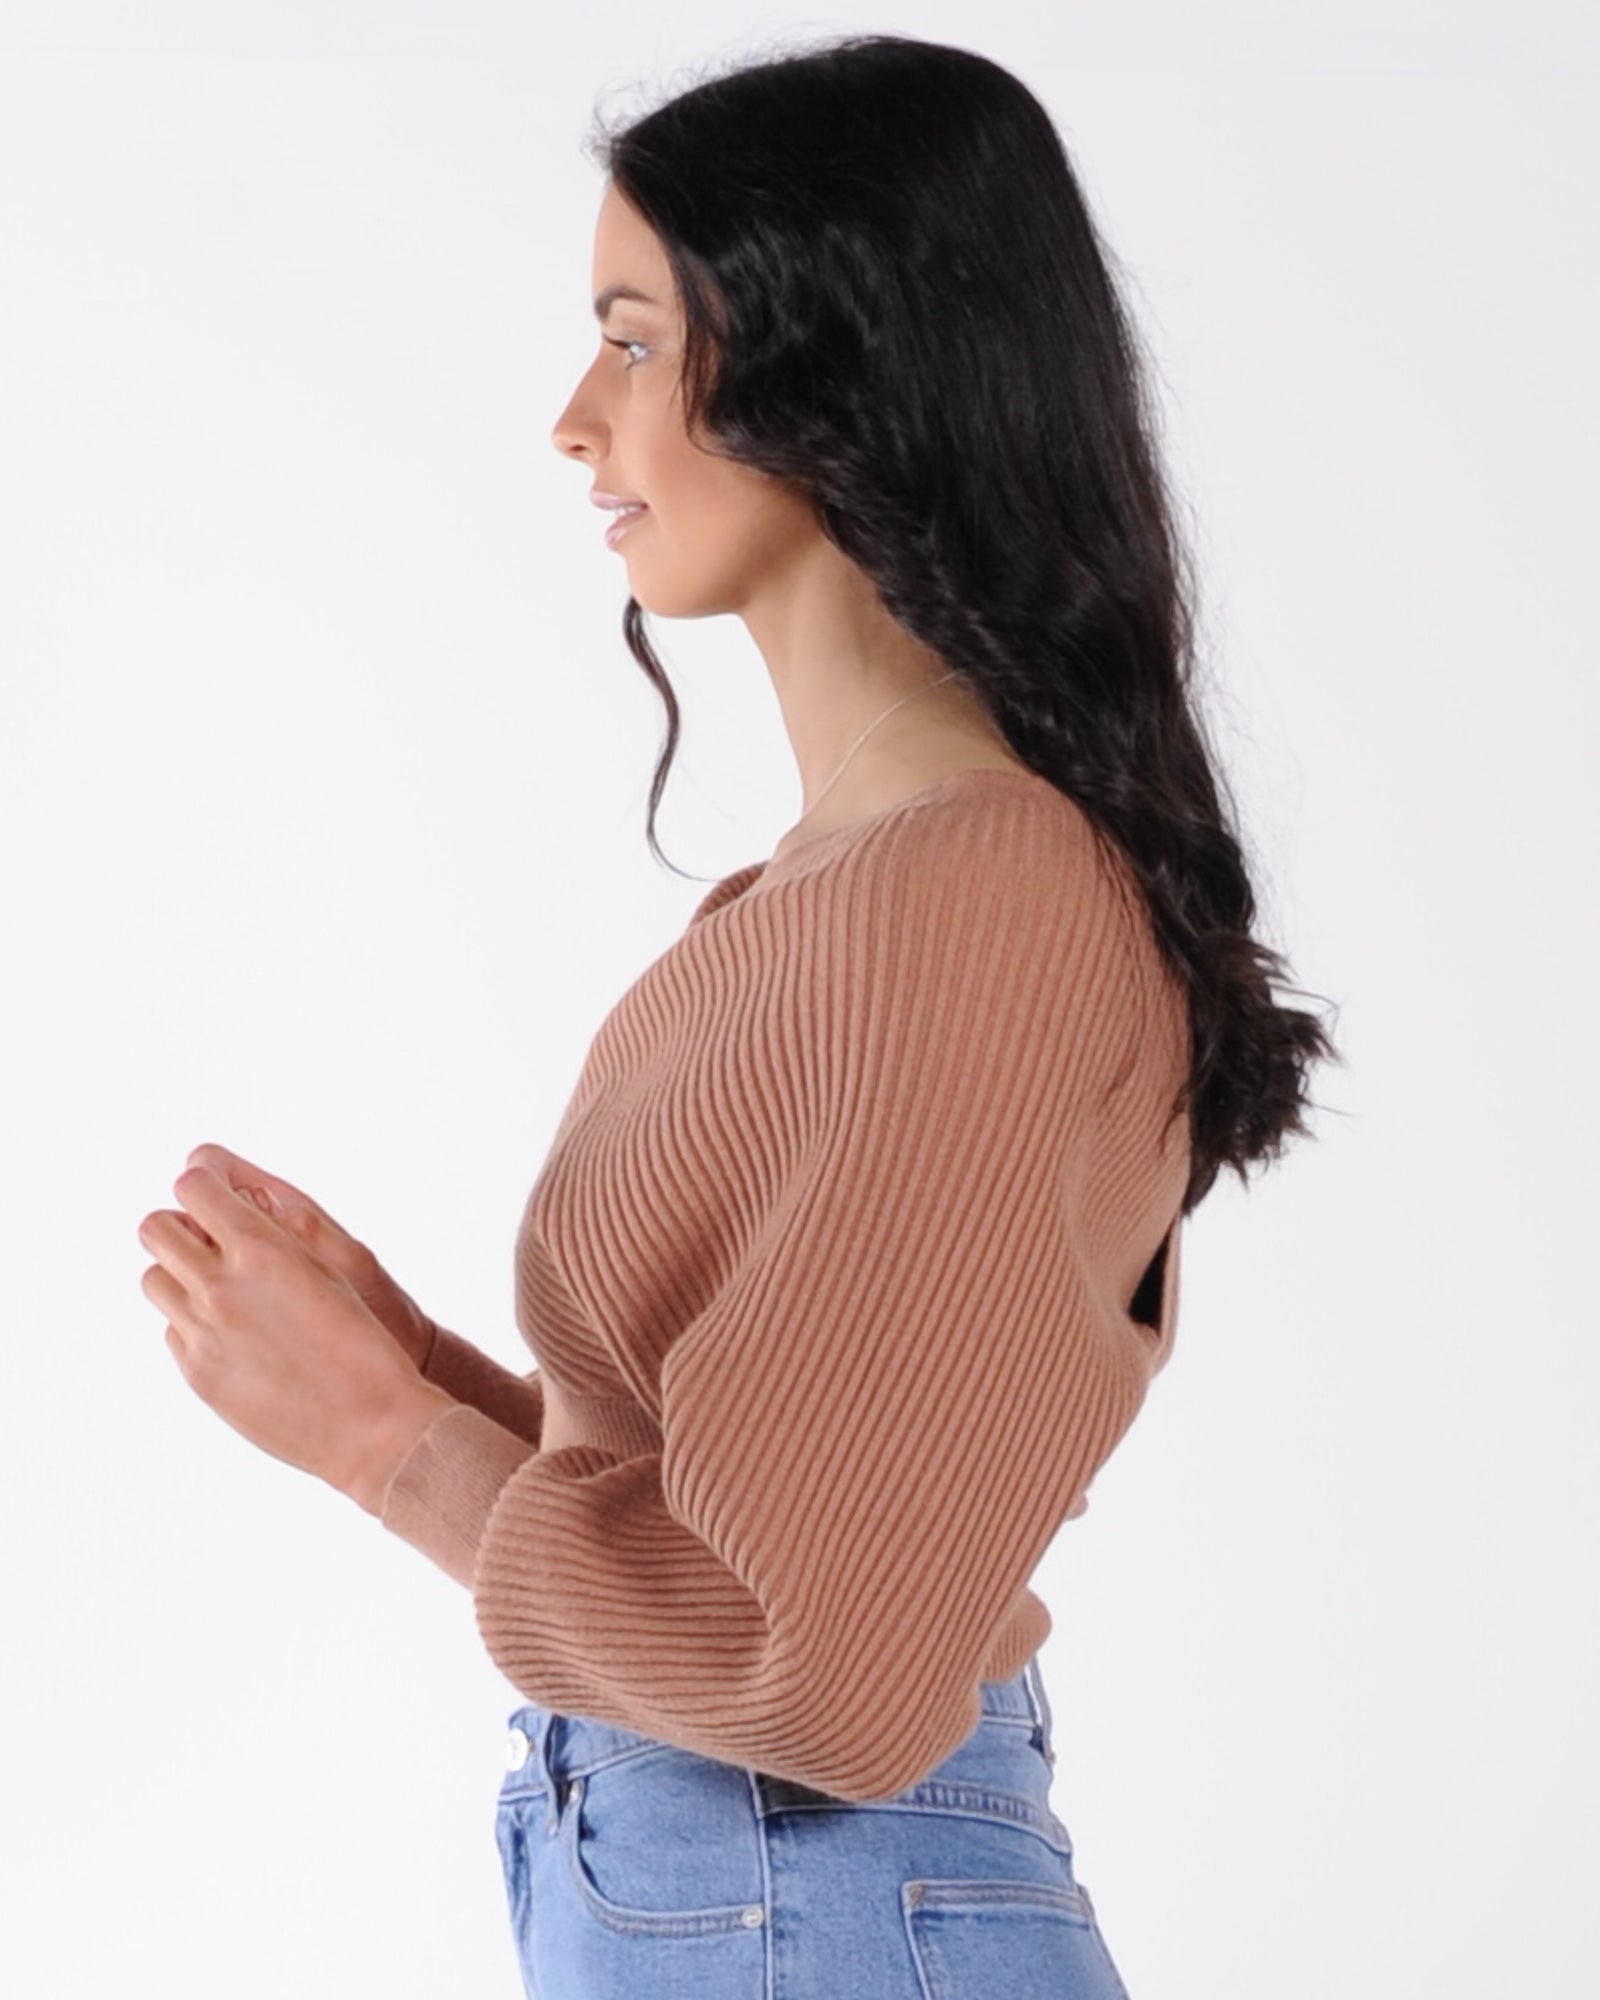 Wine Night Knit - Tan